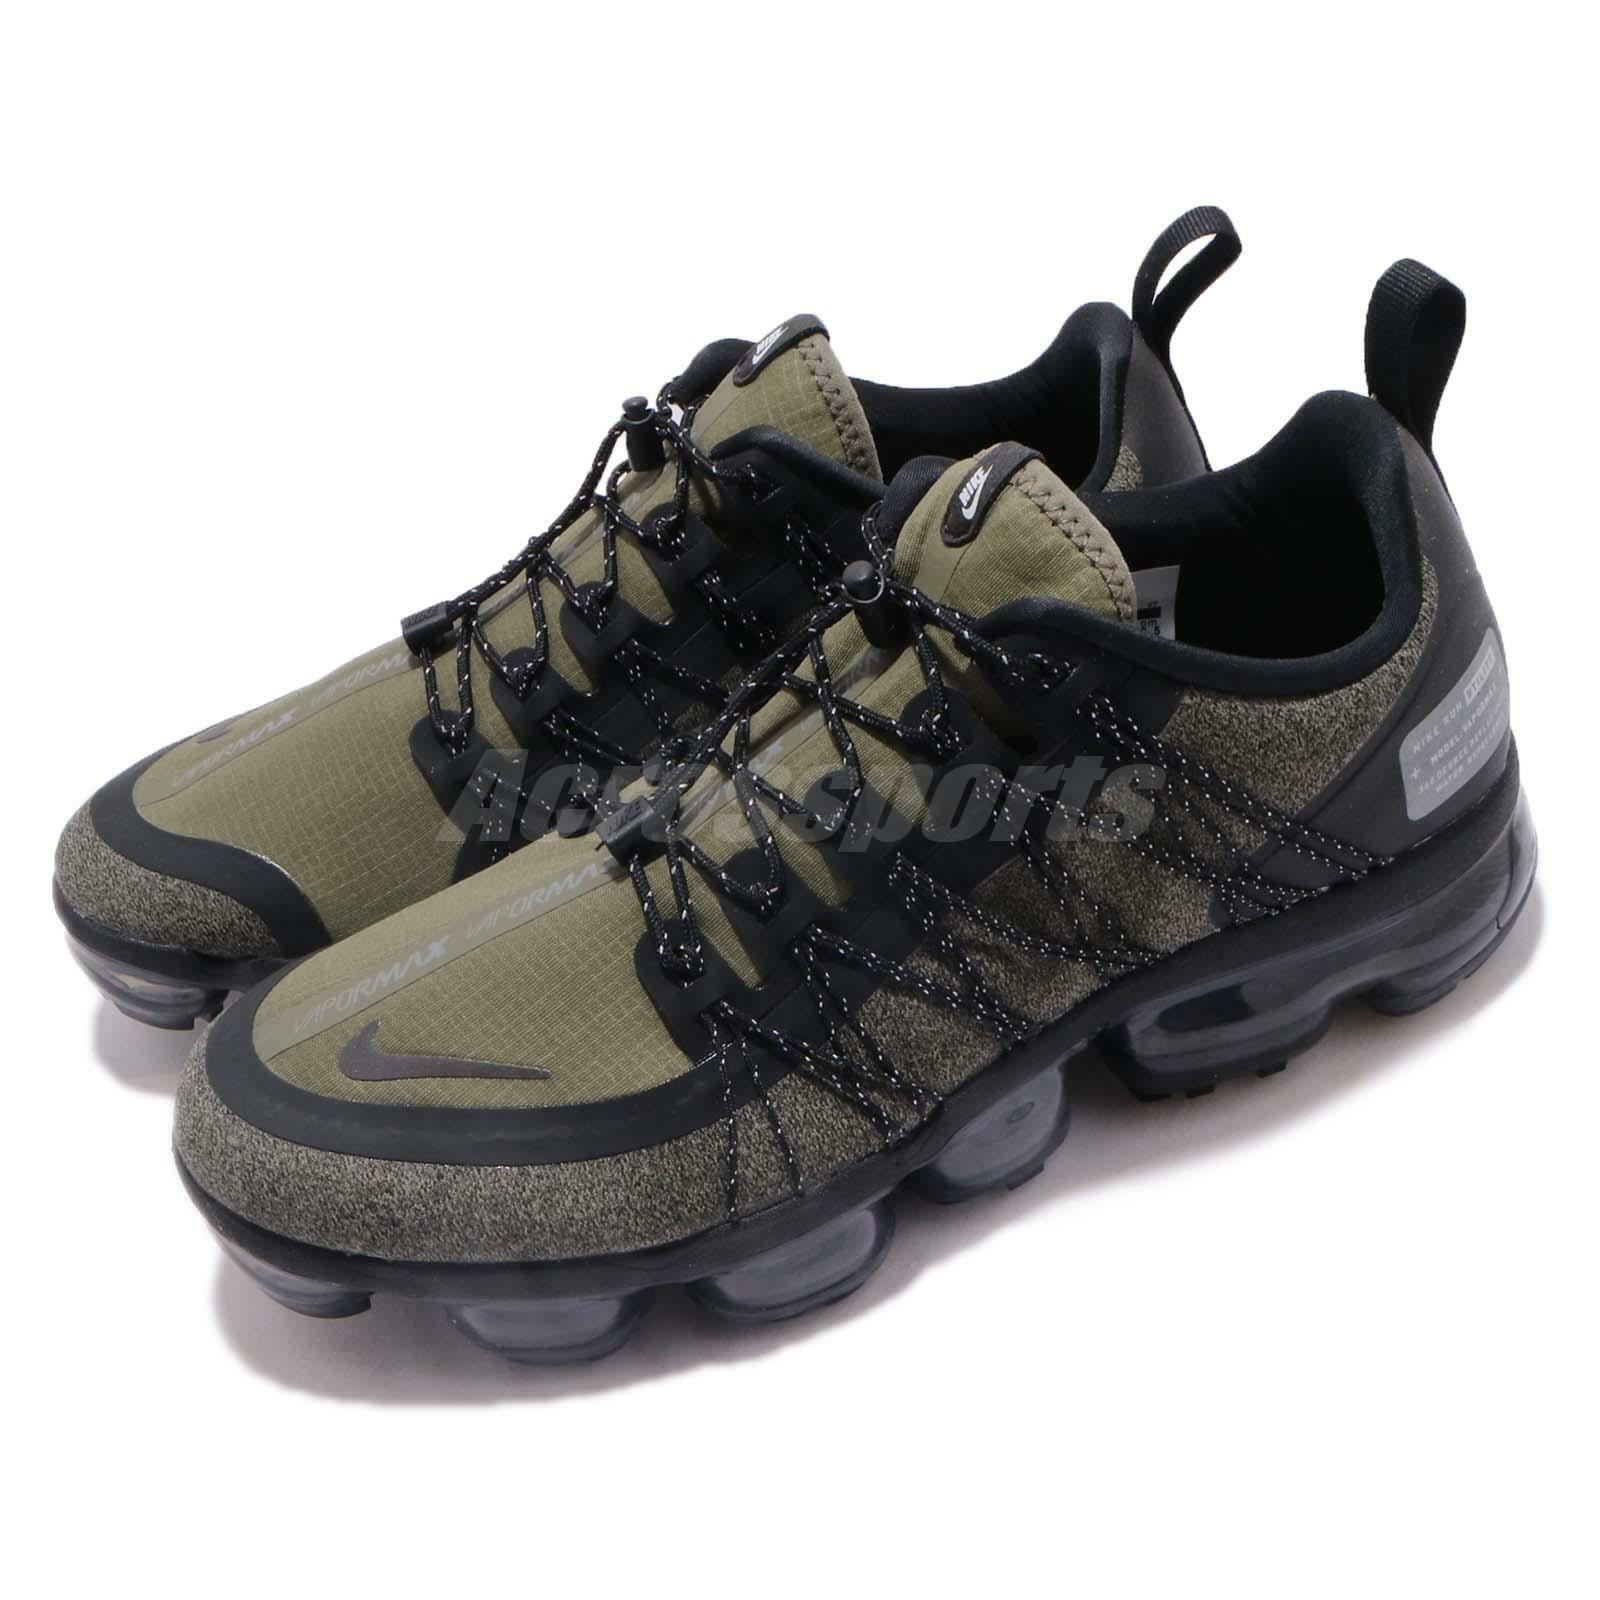 Nike Air Vapormax Run Utility Medium Olive Green Mens Running  shoes AQ8810-201  cost-effective